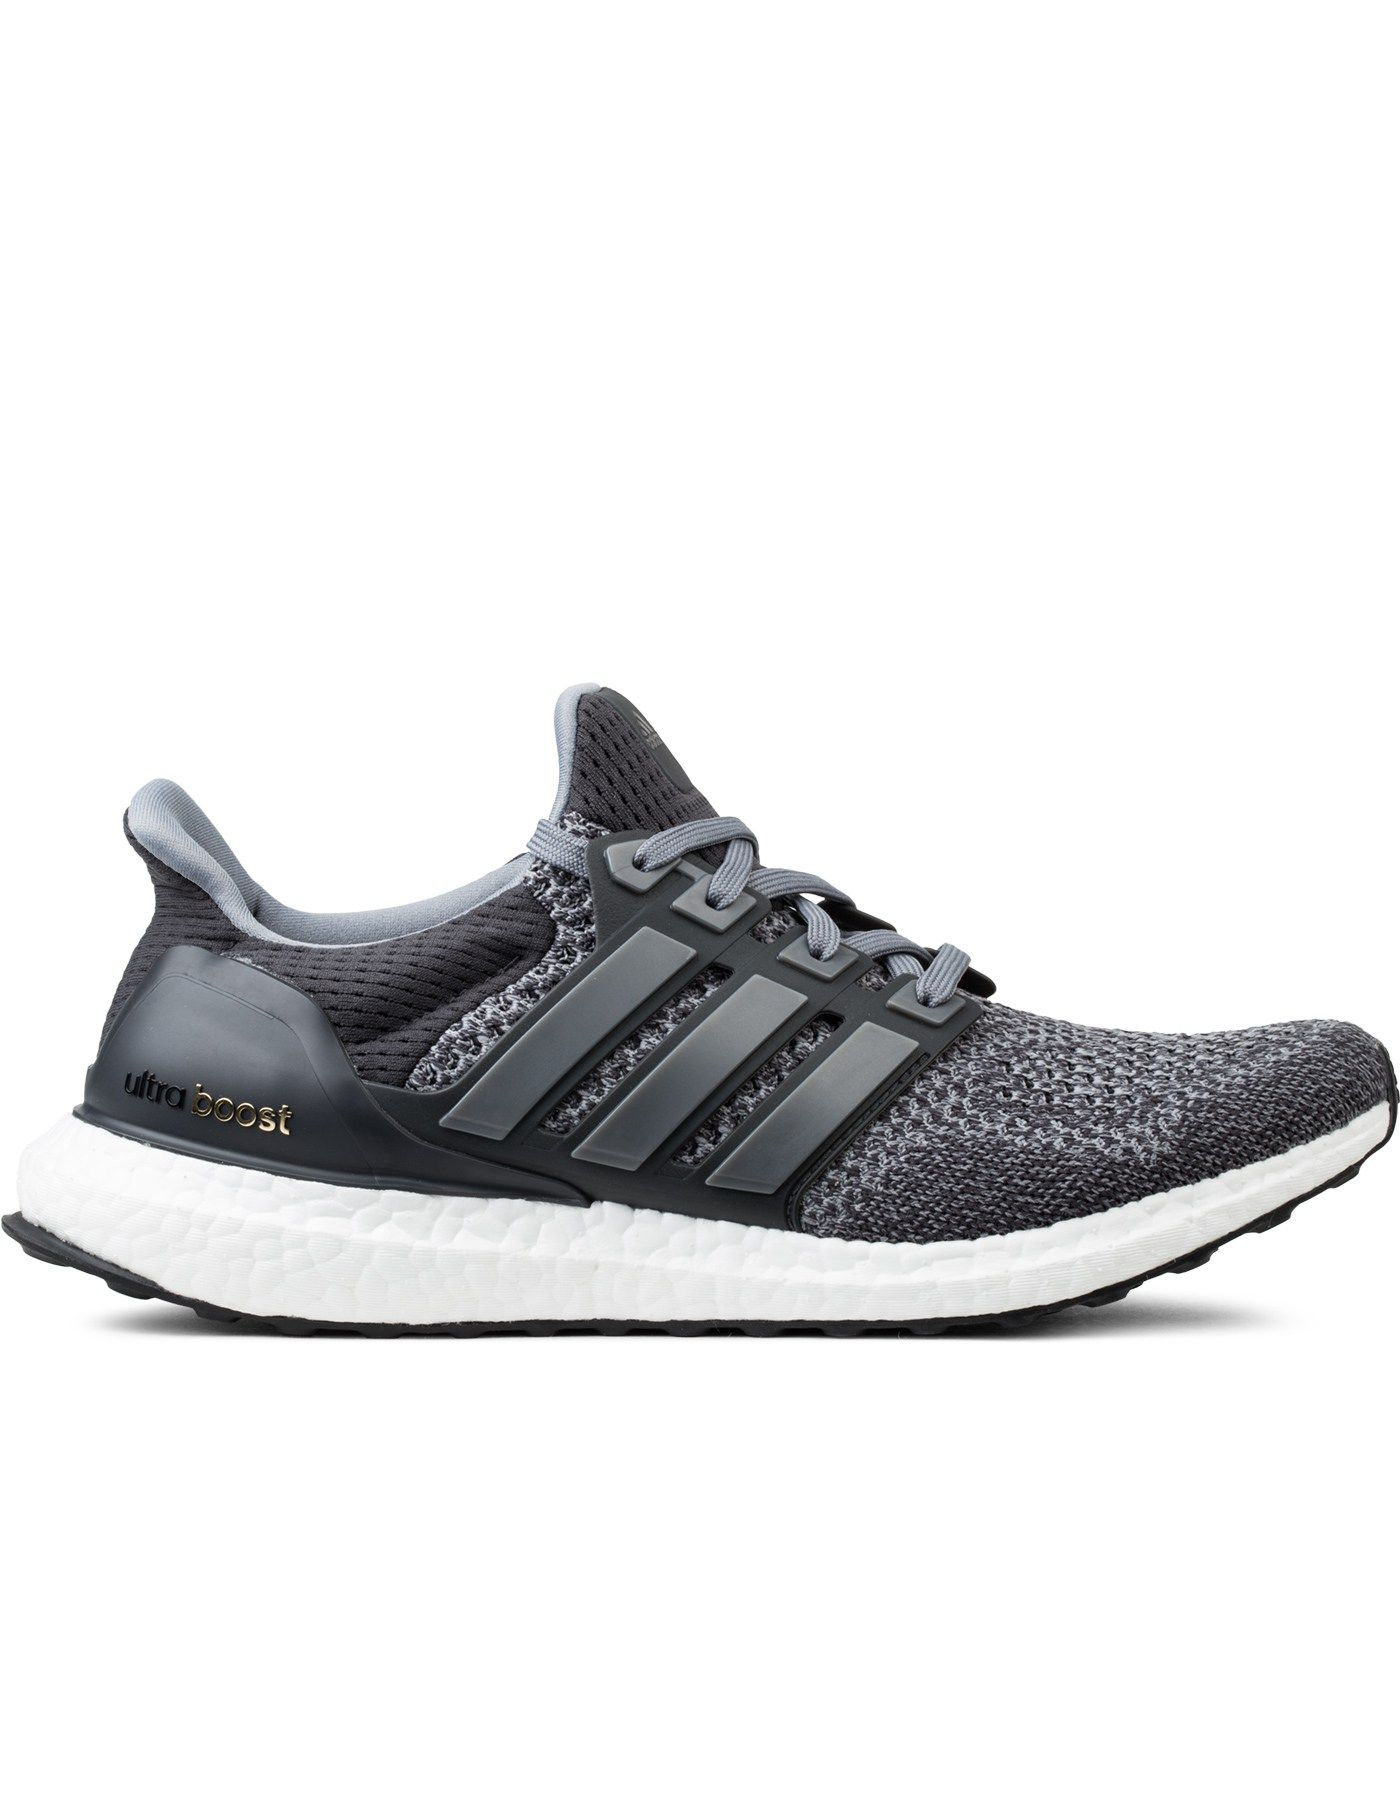 41629359a59 Shop adidas Adidas Ultra Boost LTD